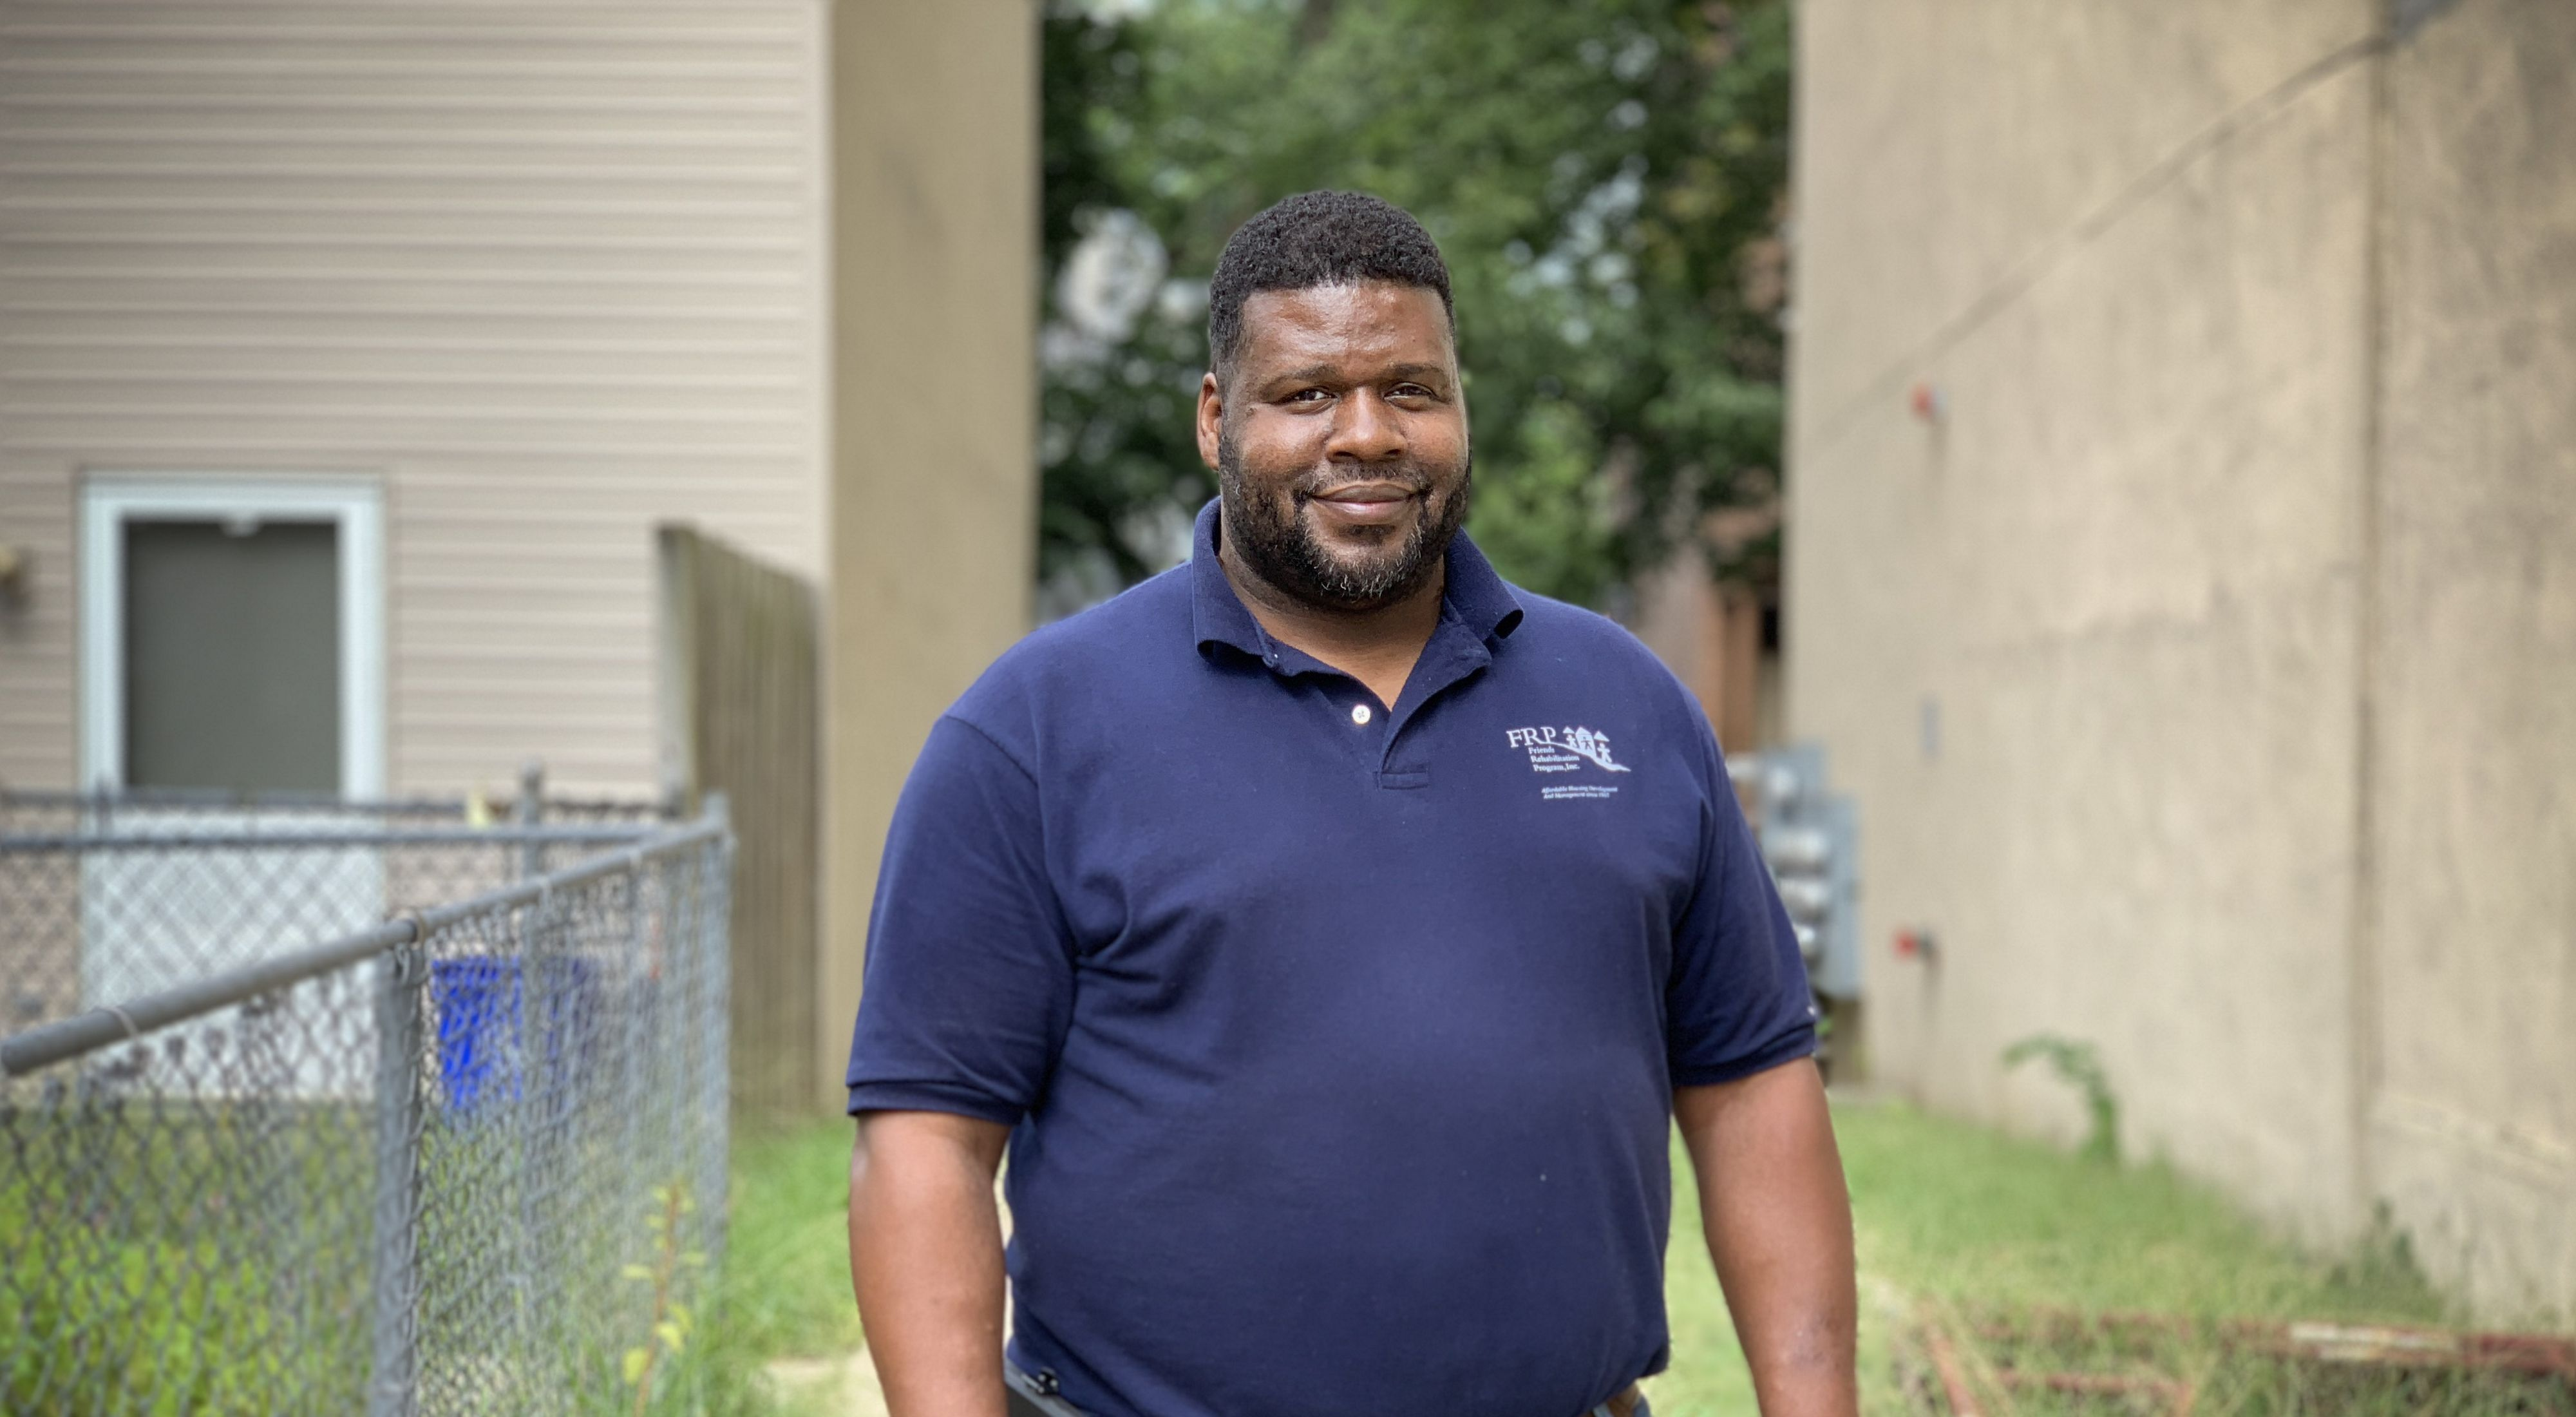 A smiling man in a blue shirt stands in a residential neighborhood between two houses.